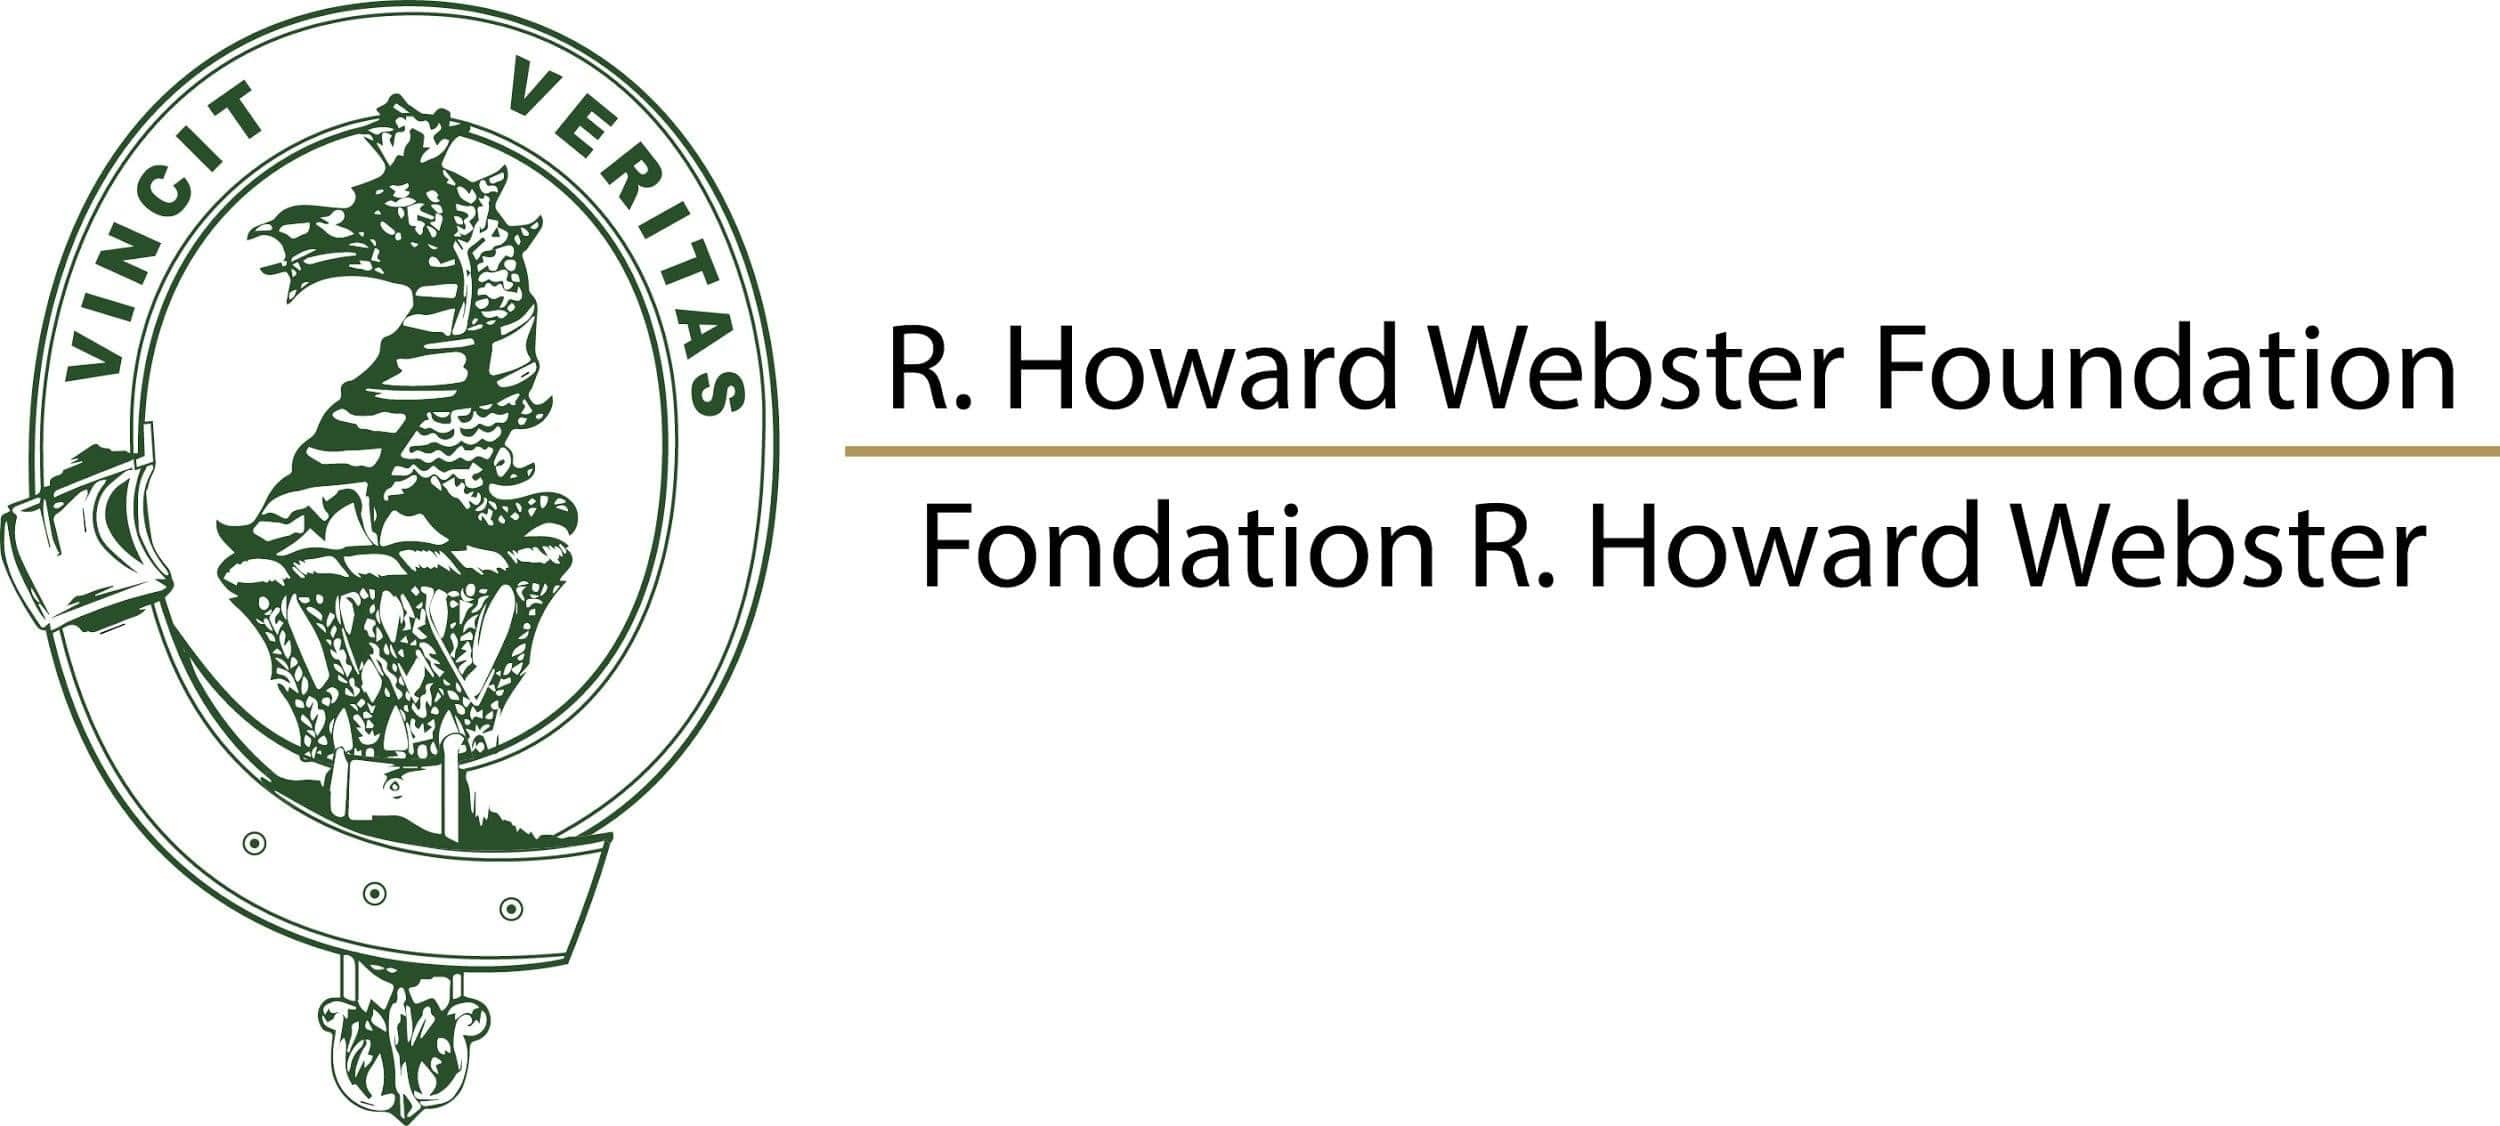 Fondation R. Howard Webster